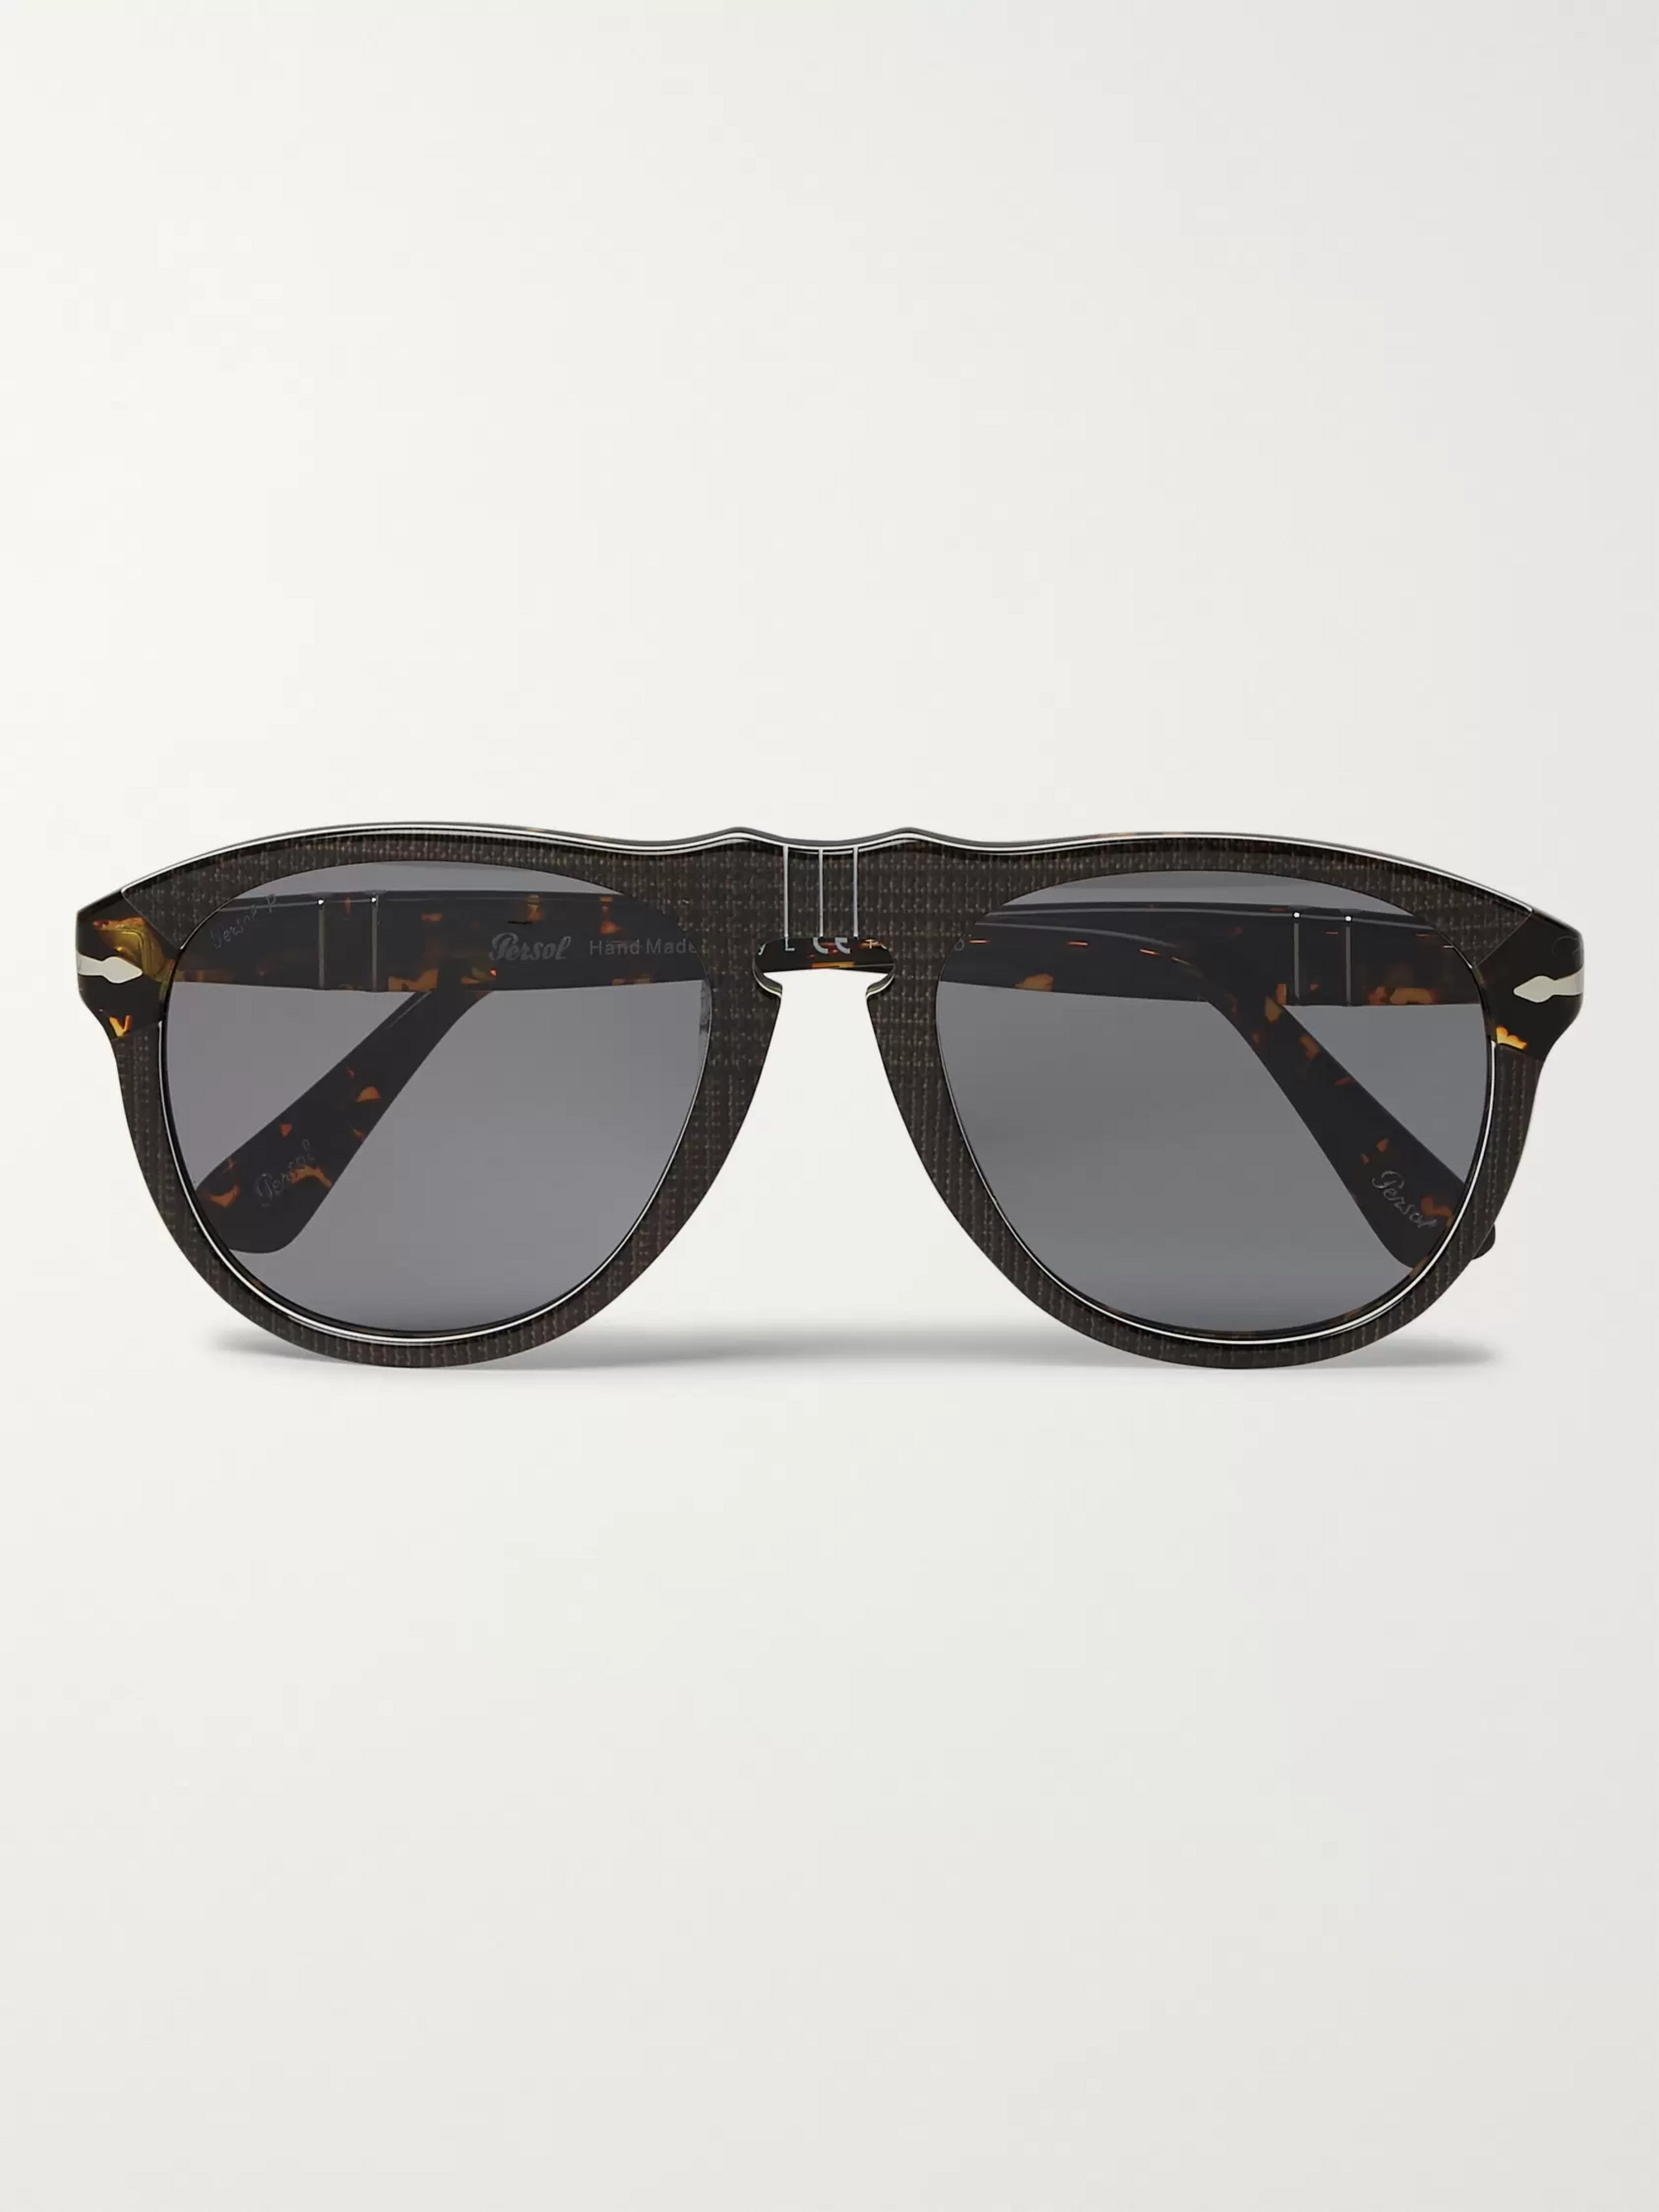 Acetate Sunglasses Frame D Polarised lKJ1FTc3